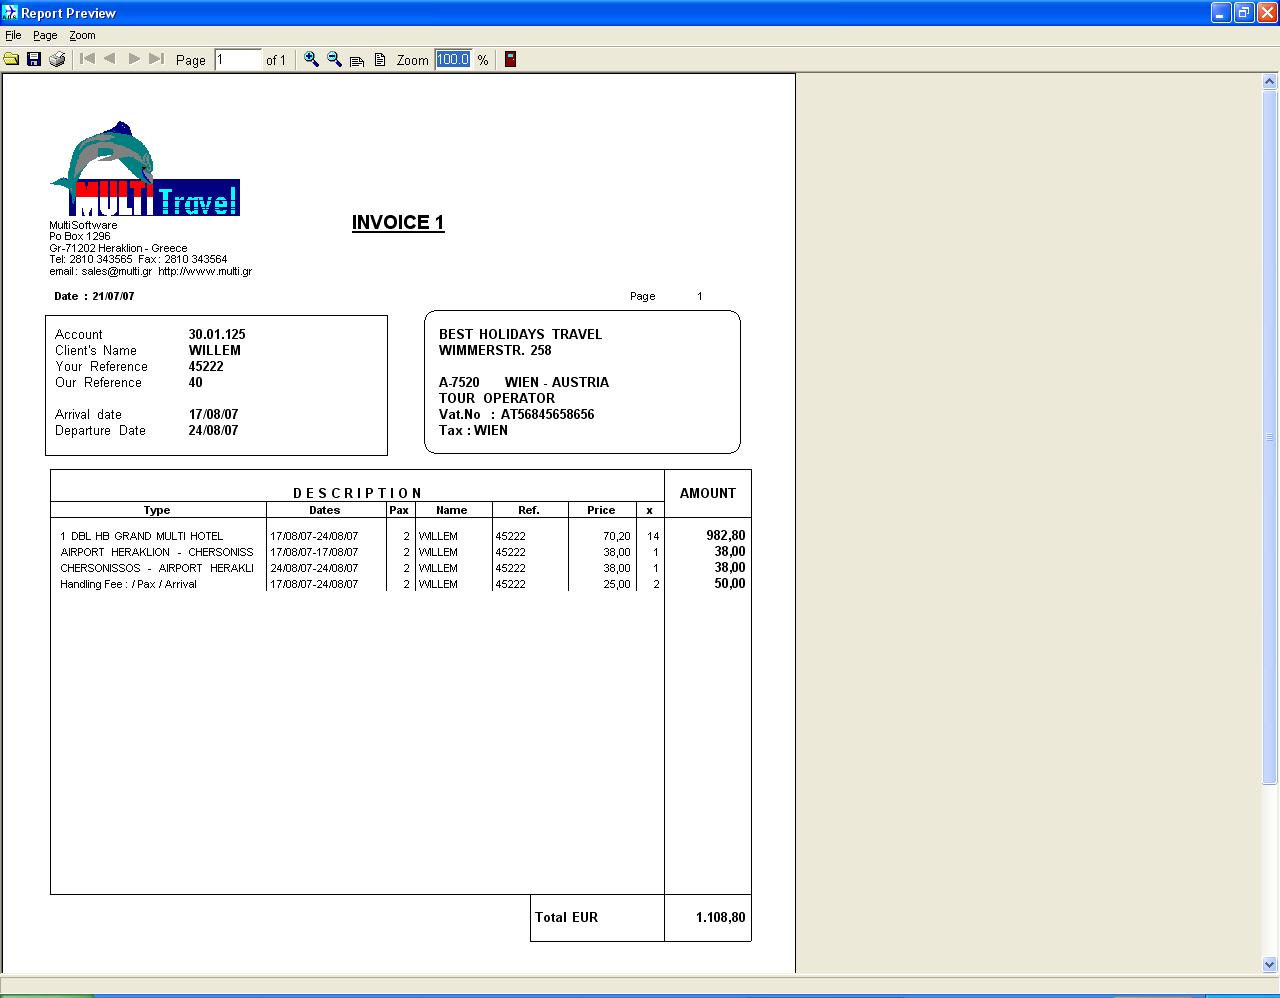 travel invoice cf multi travel incoming invoice